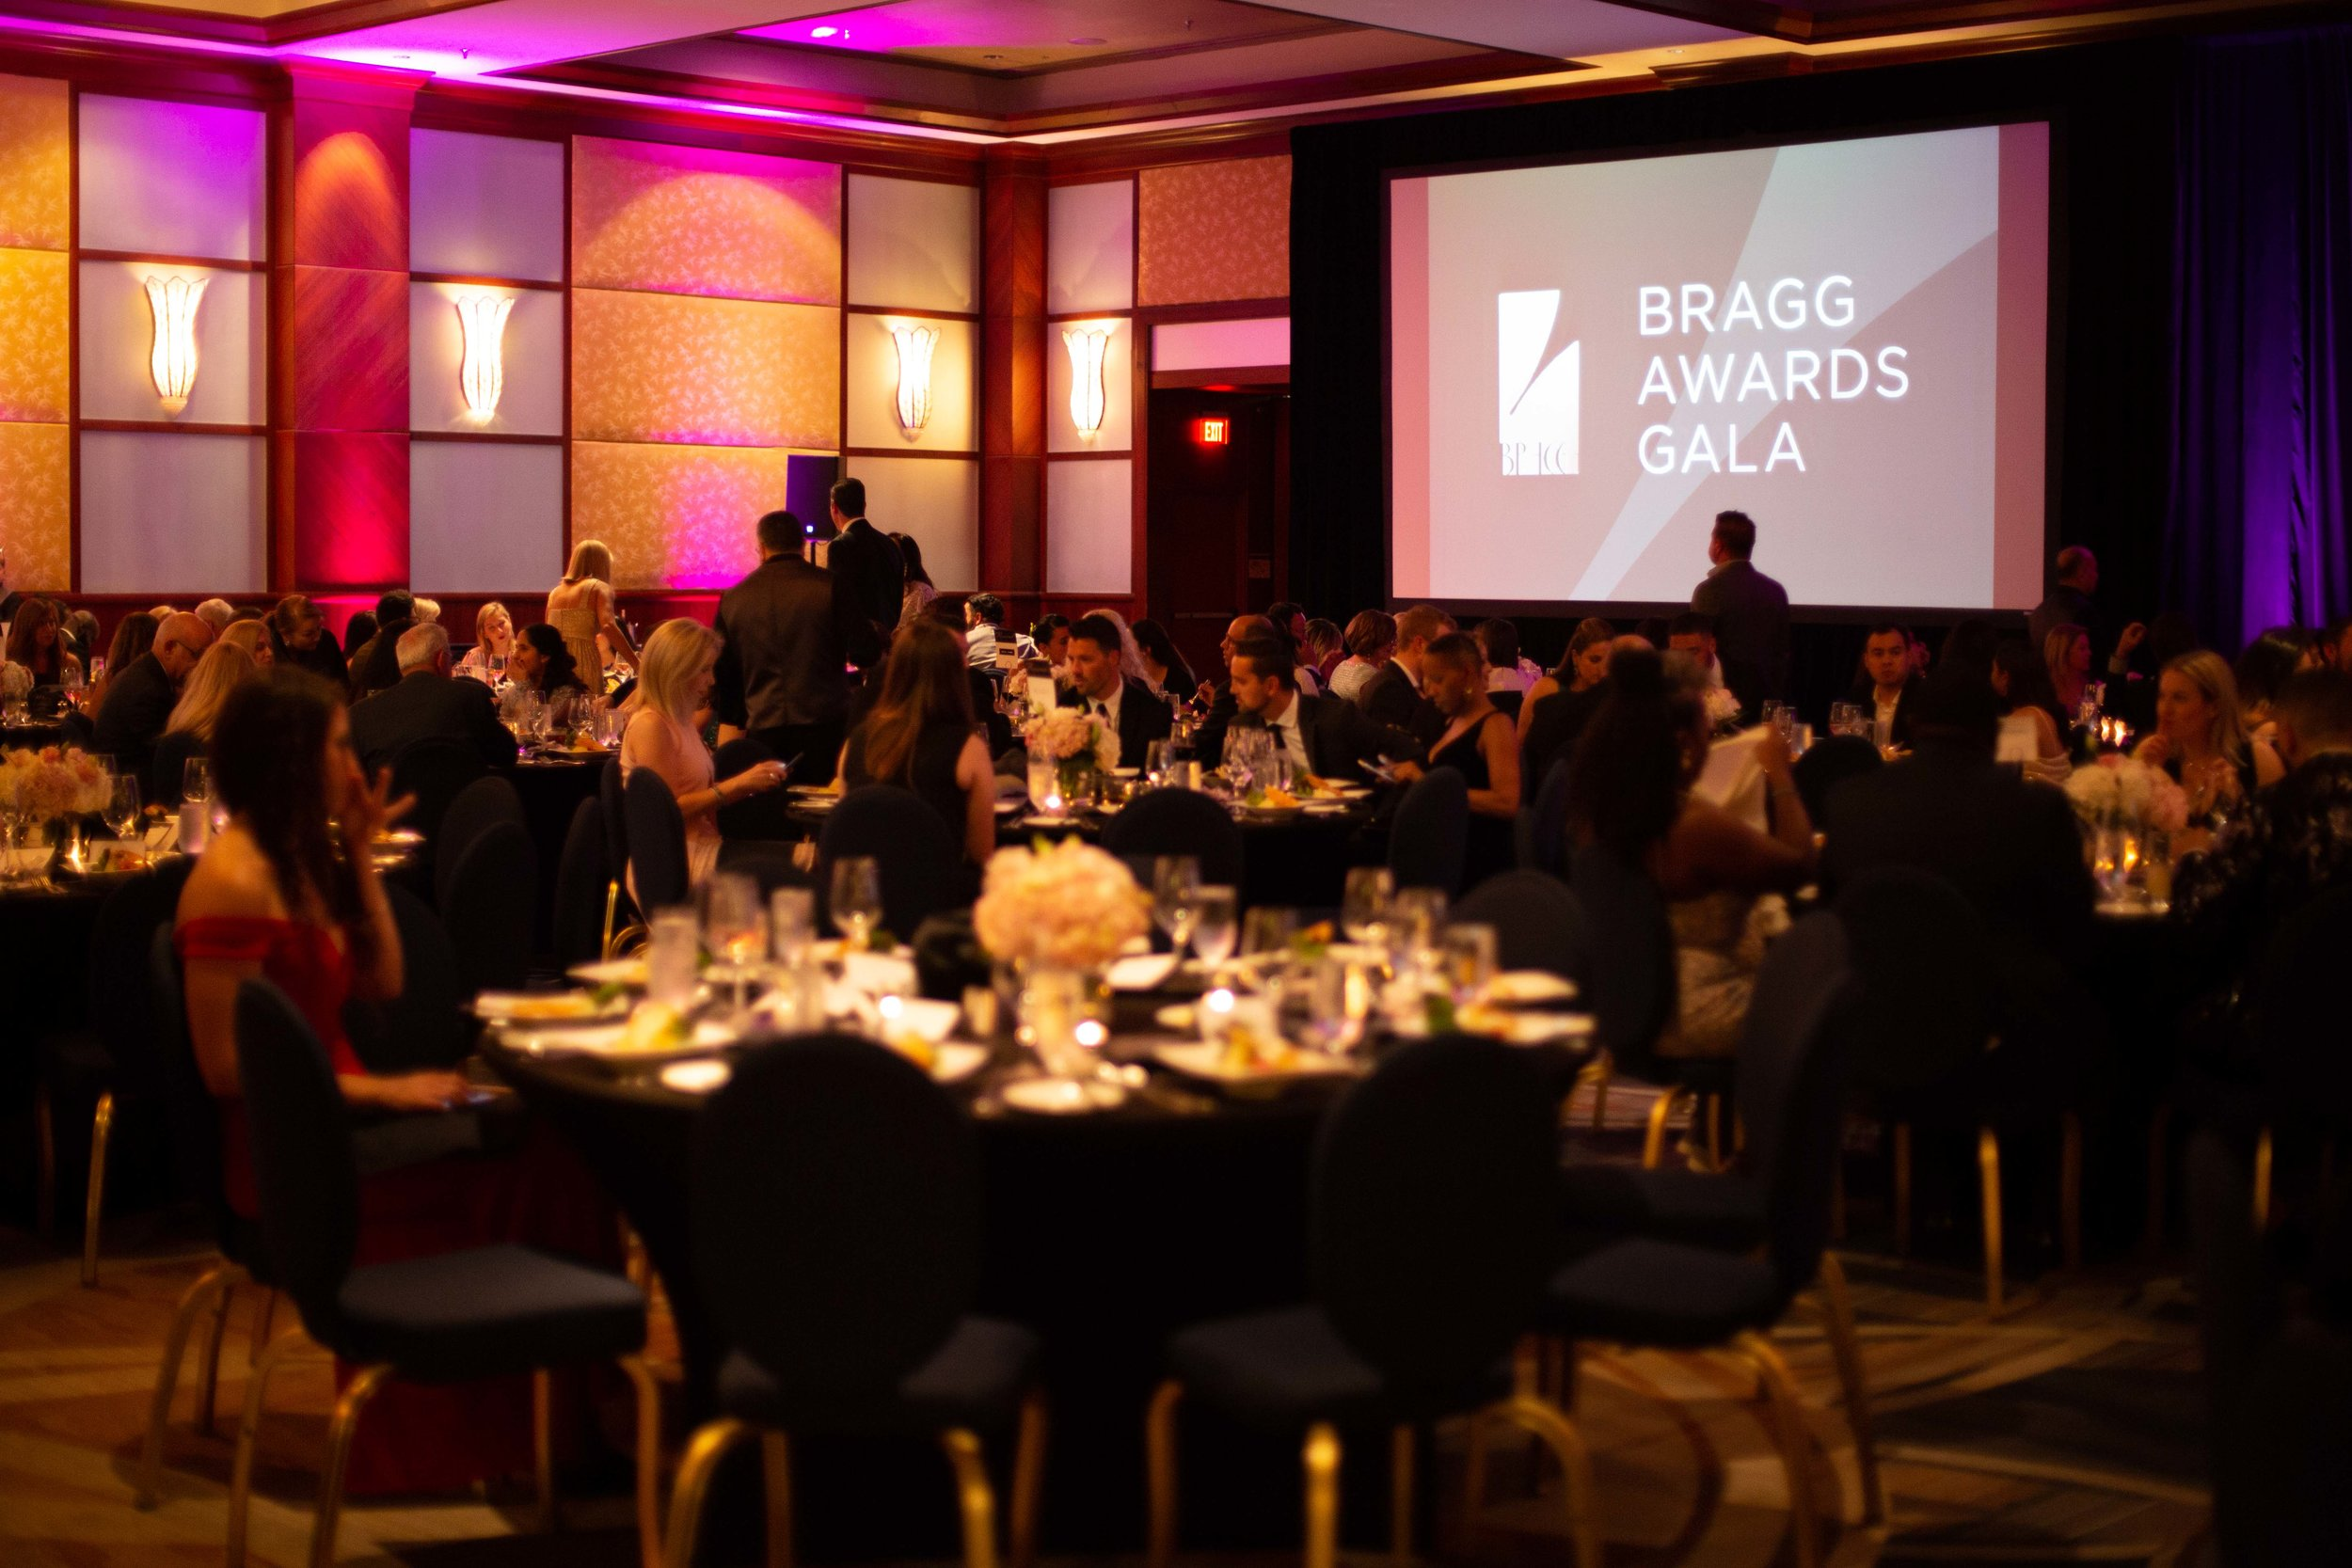 Bragg-Awards-2018-2-12.jpg